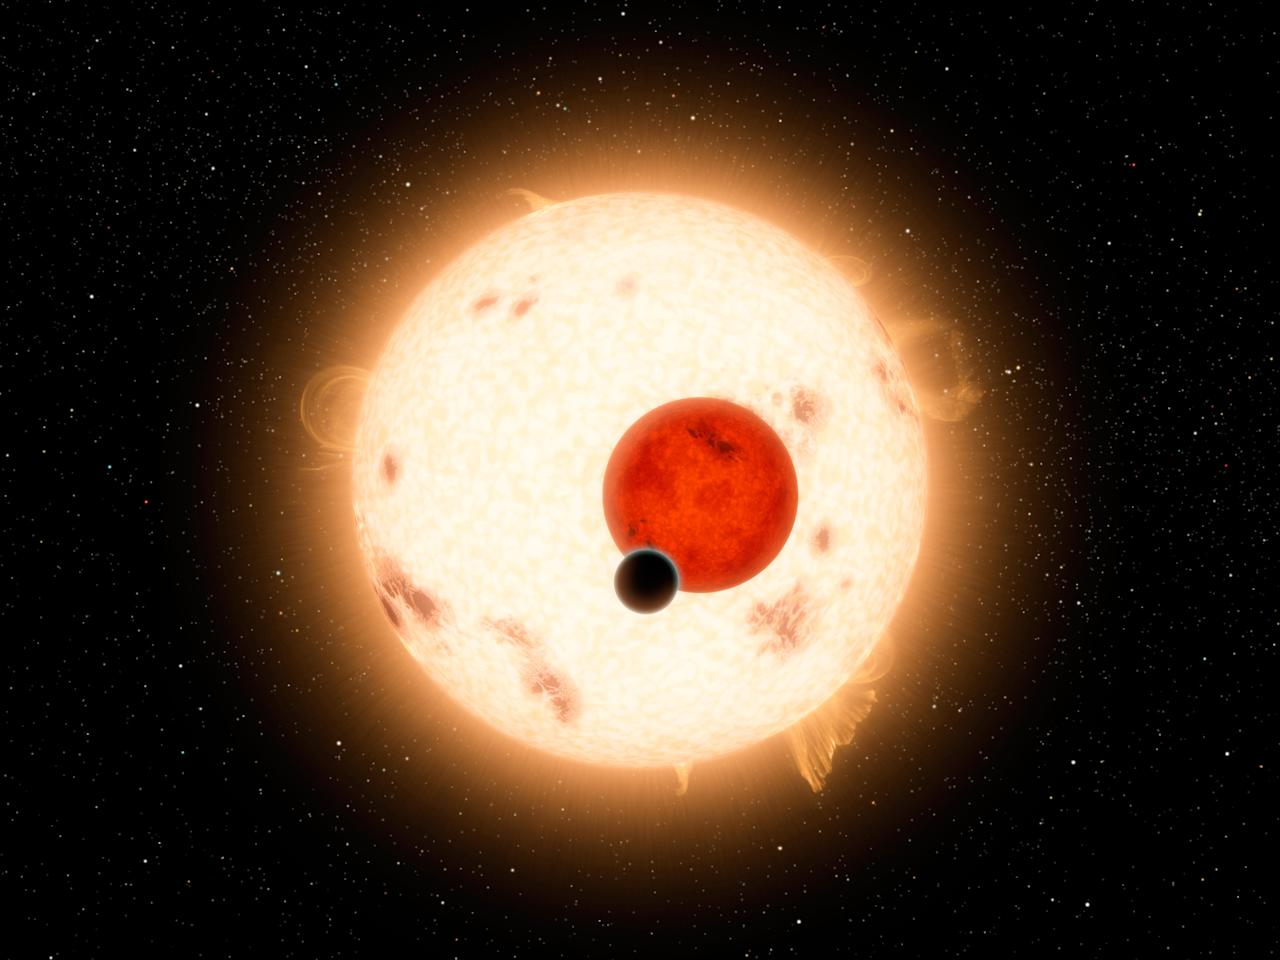 NASA handout image shows an artist's concept of the planet Kepler-16b with its two stars. The cold planet, with its gaseous surface, is not thought to be habitable. The largest of the two stars, a K dwarf, is about 69 percent the mass of our sun, and the smallest, a red dwarf, is about 20 percent the sun's mass. These star pairs are called eclipsing binaries. REUTERS/NASA/JPL-Caltech/R. Hurt/Handout